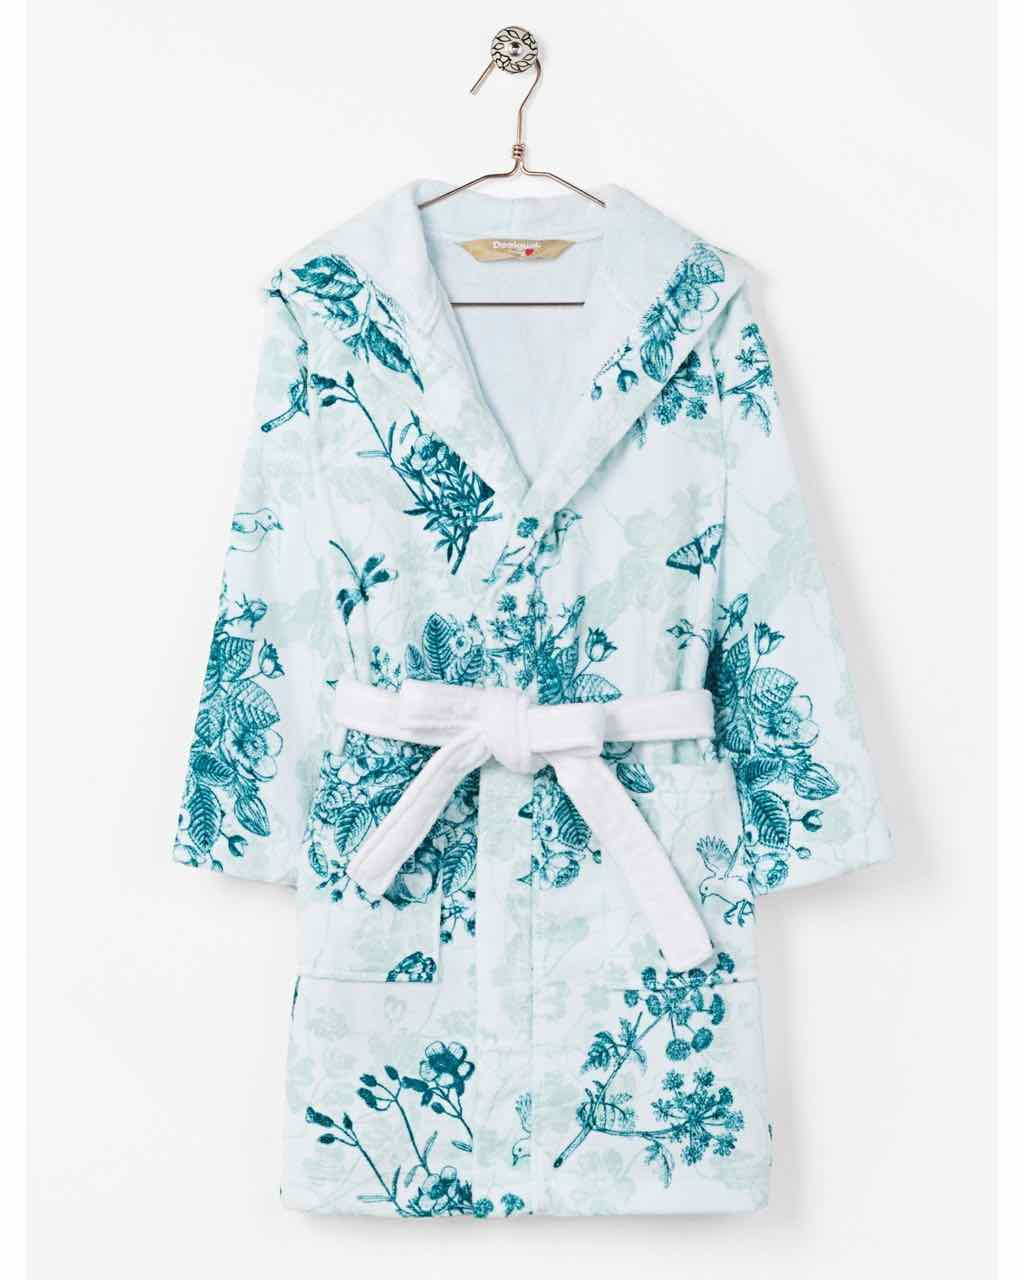 Desigual Bathrobe White Floral